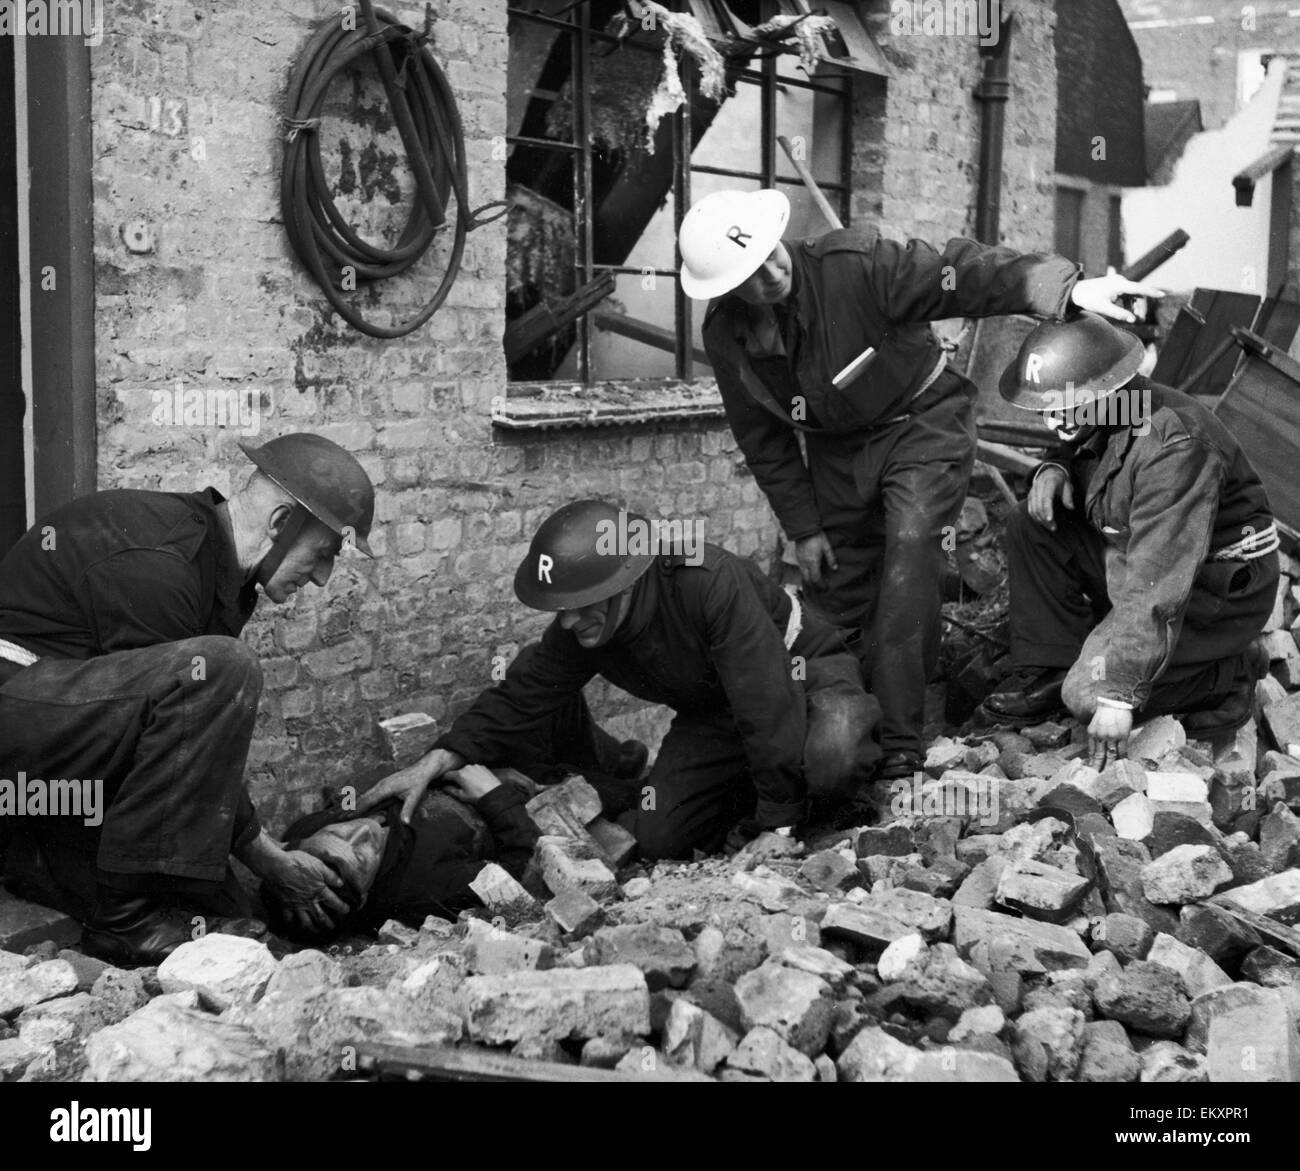 South London's First Civil Defence Basic Training Ground at the Lamberth Civil Defence Training Centre. Our - Stock Image